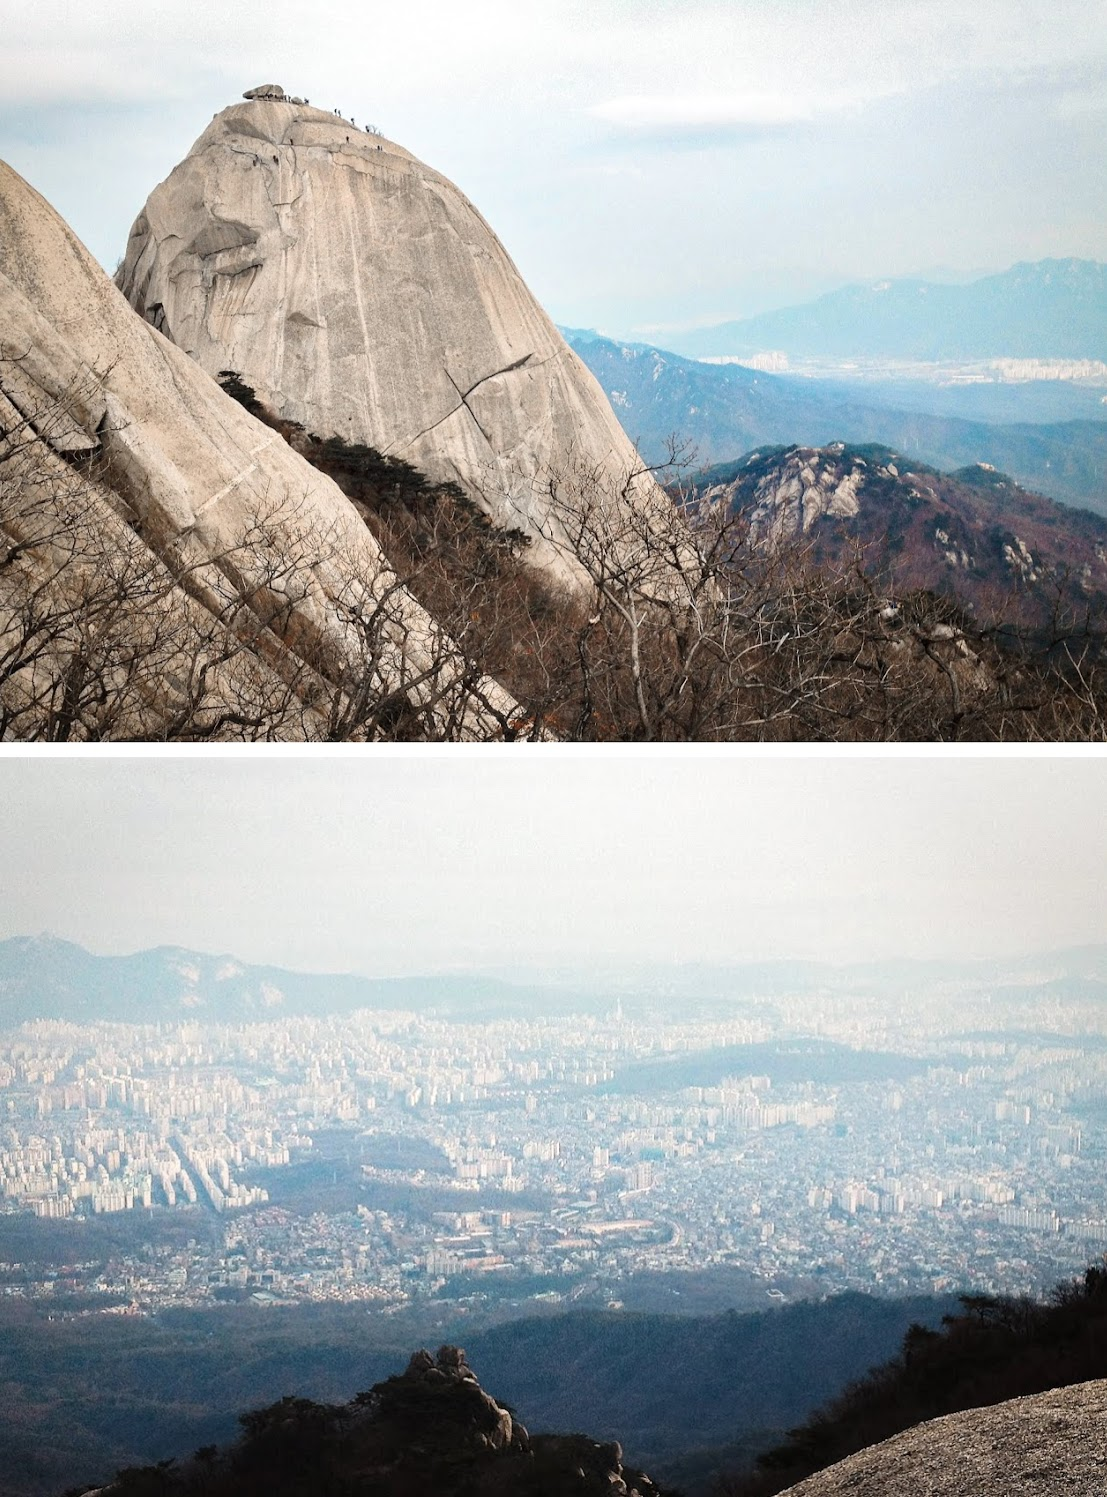 View of Seoul from Bukhansan